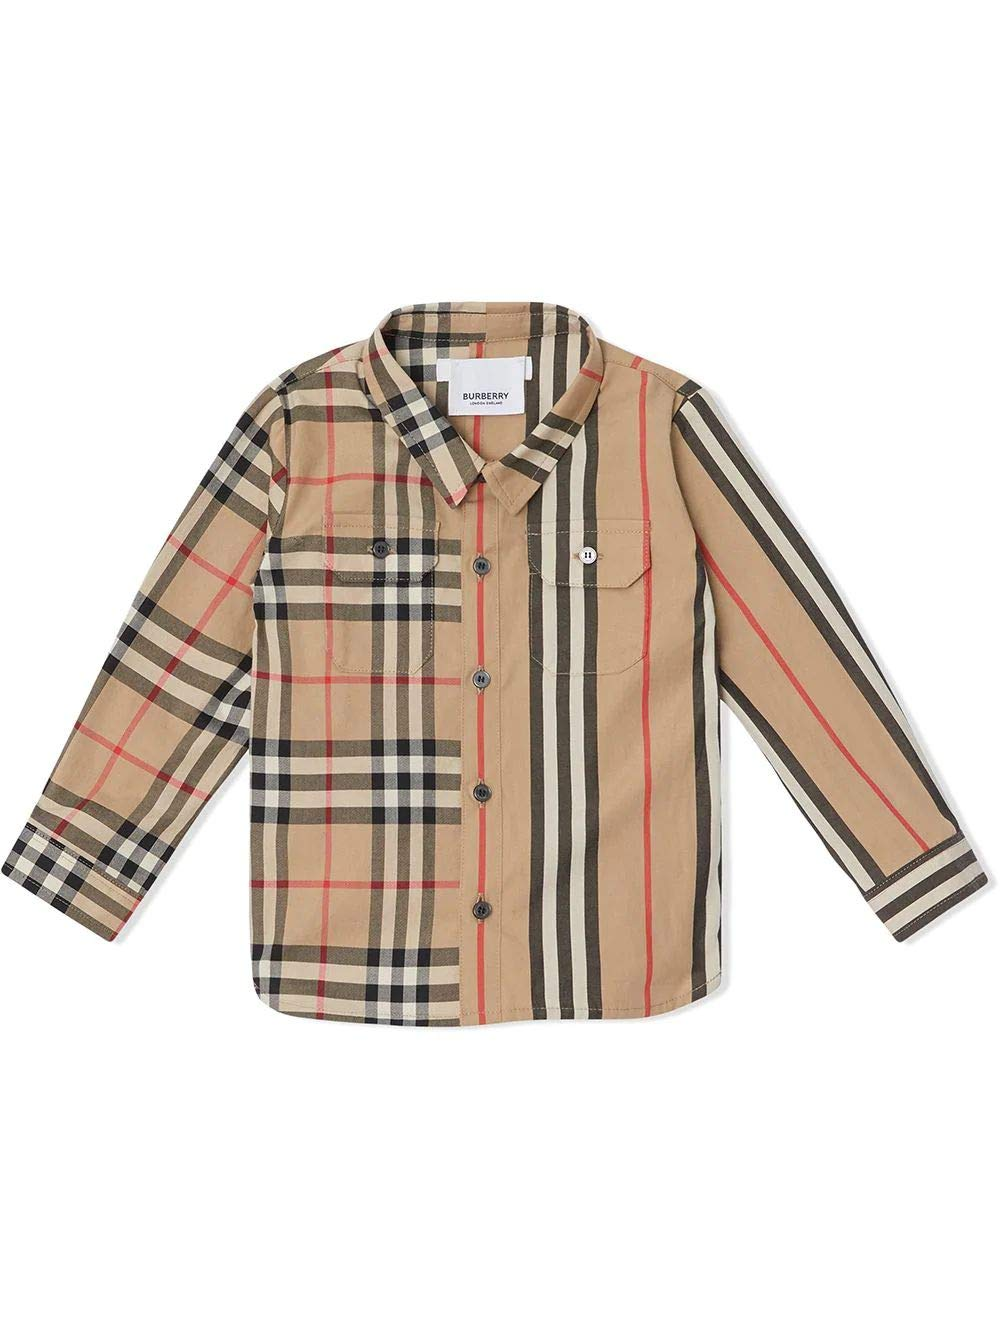 BURBERRY Luxury Fashion Baby-Boys Shirt Winter Beige by BURBERRY